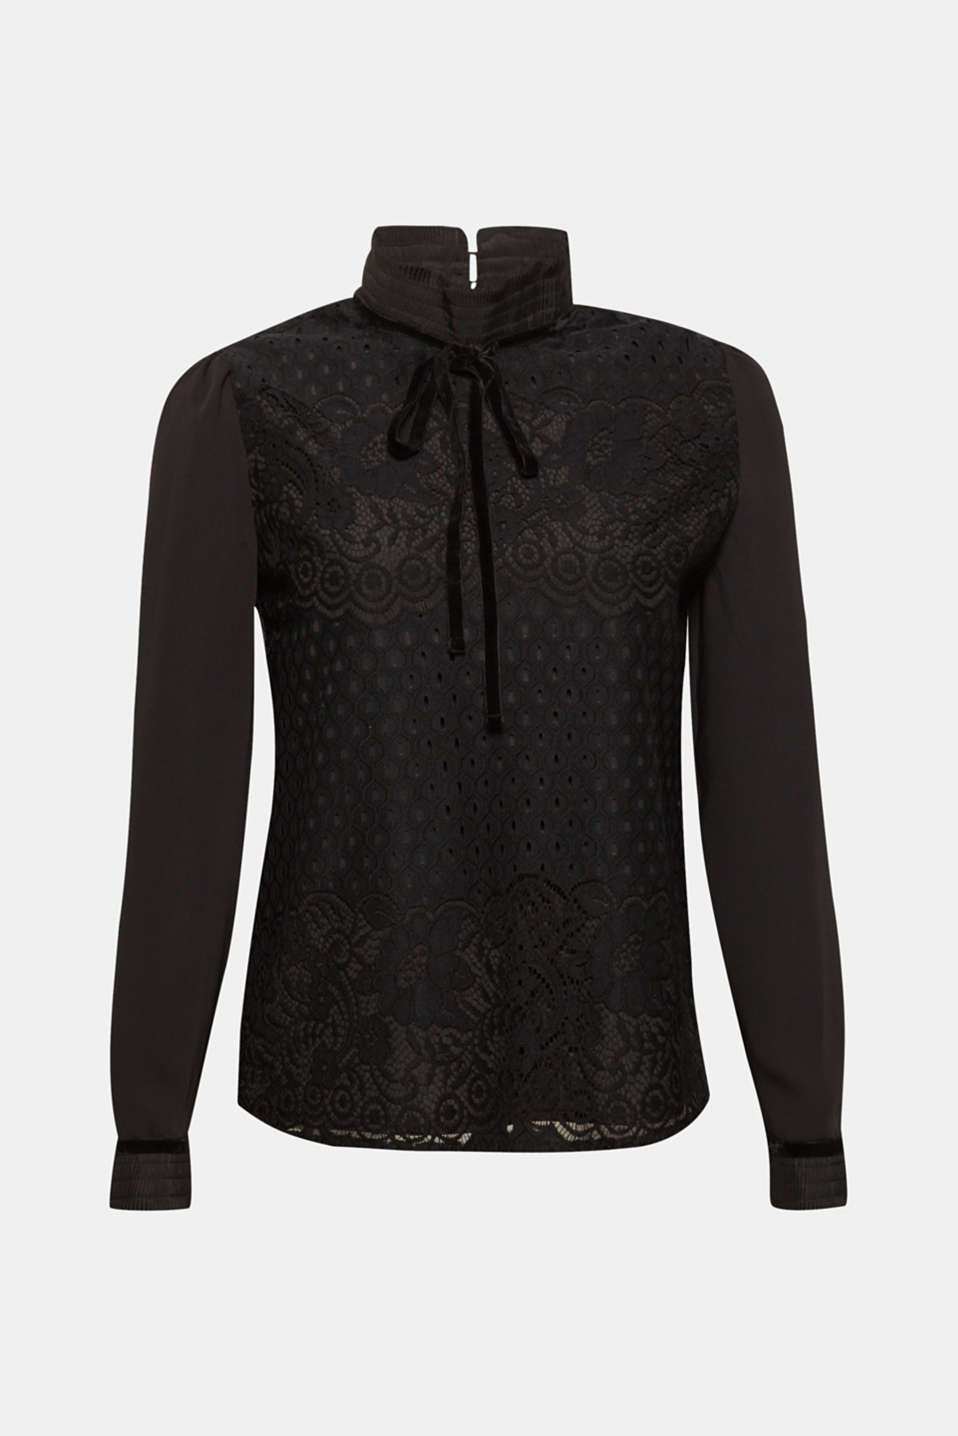 c6dd74a264432 Esprit - Lace blouse with a pleated stand-up collar at our Online Shop